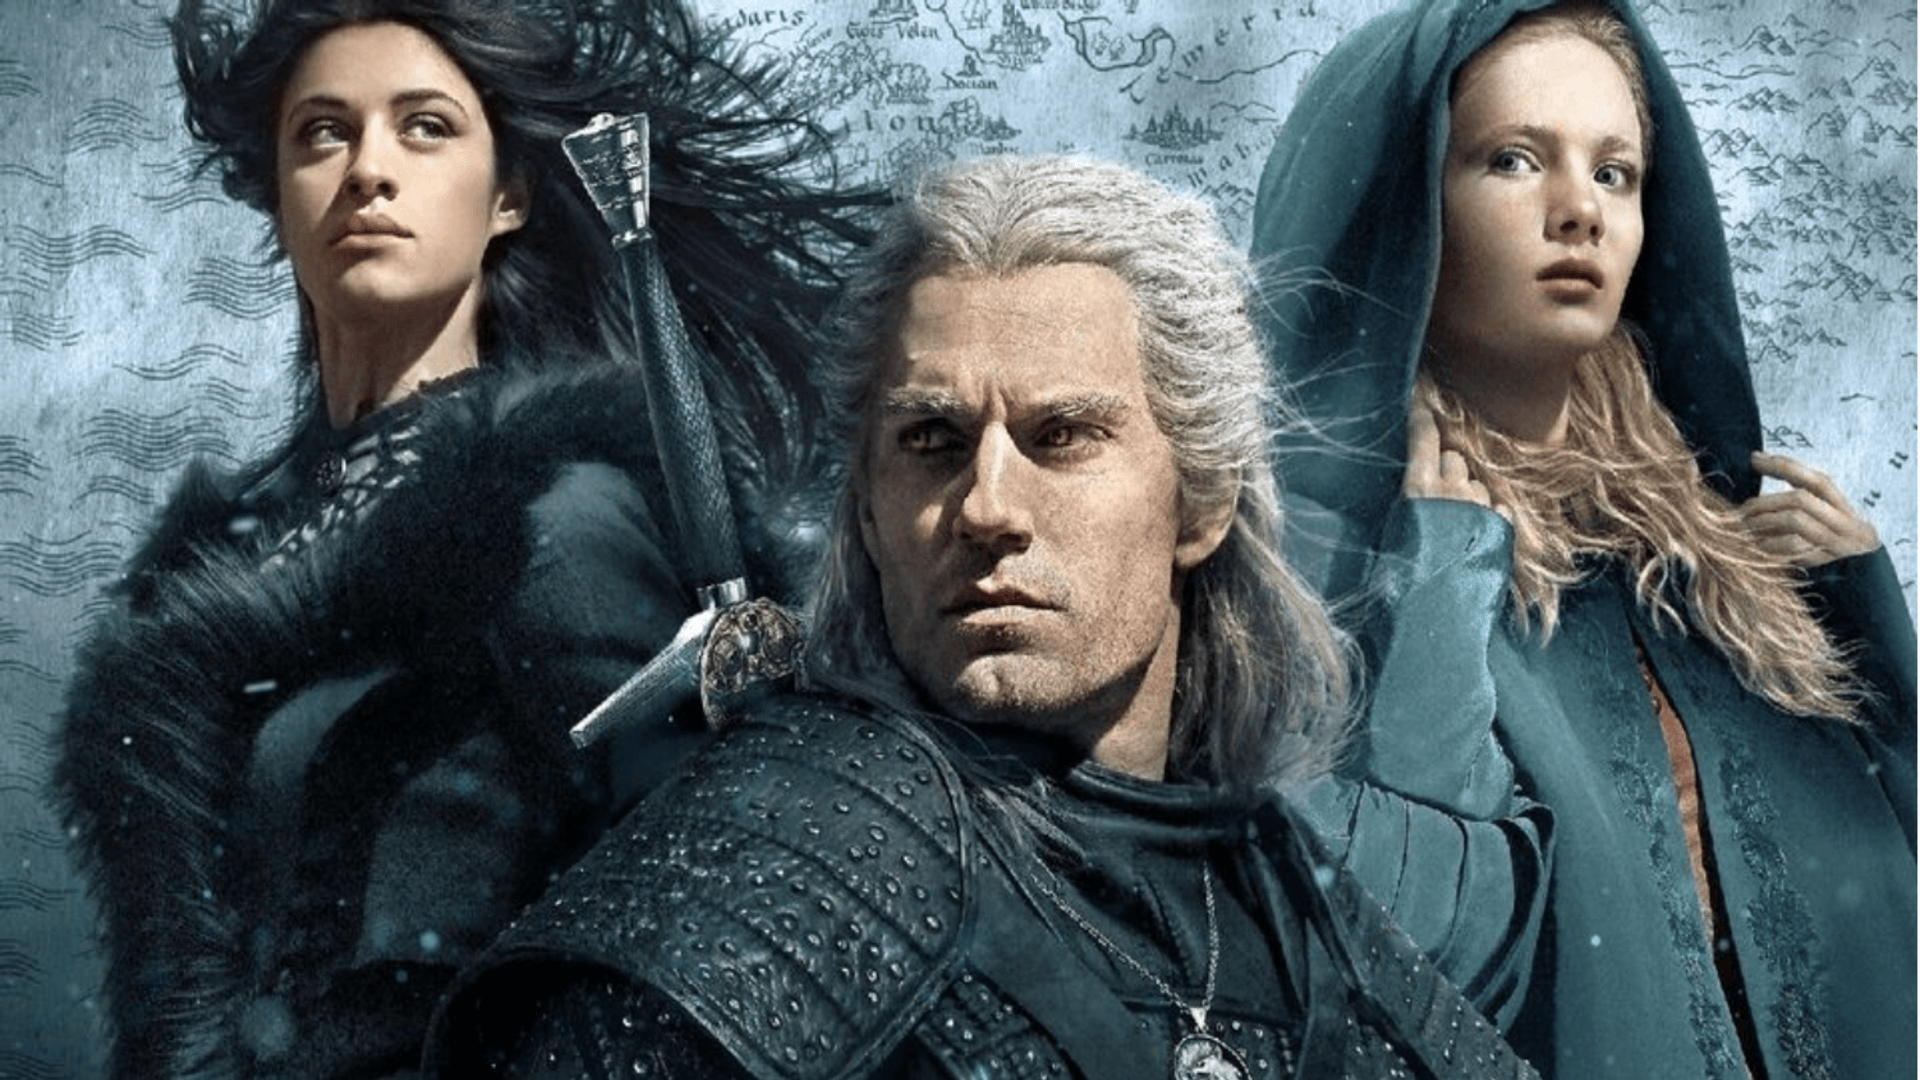 The Witcher: 10 Best Scenes From Season One